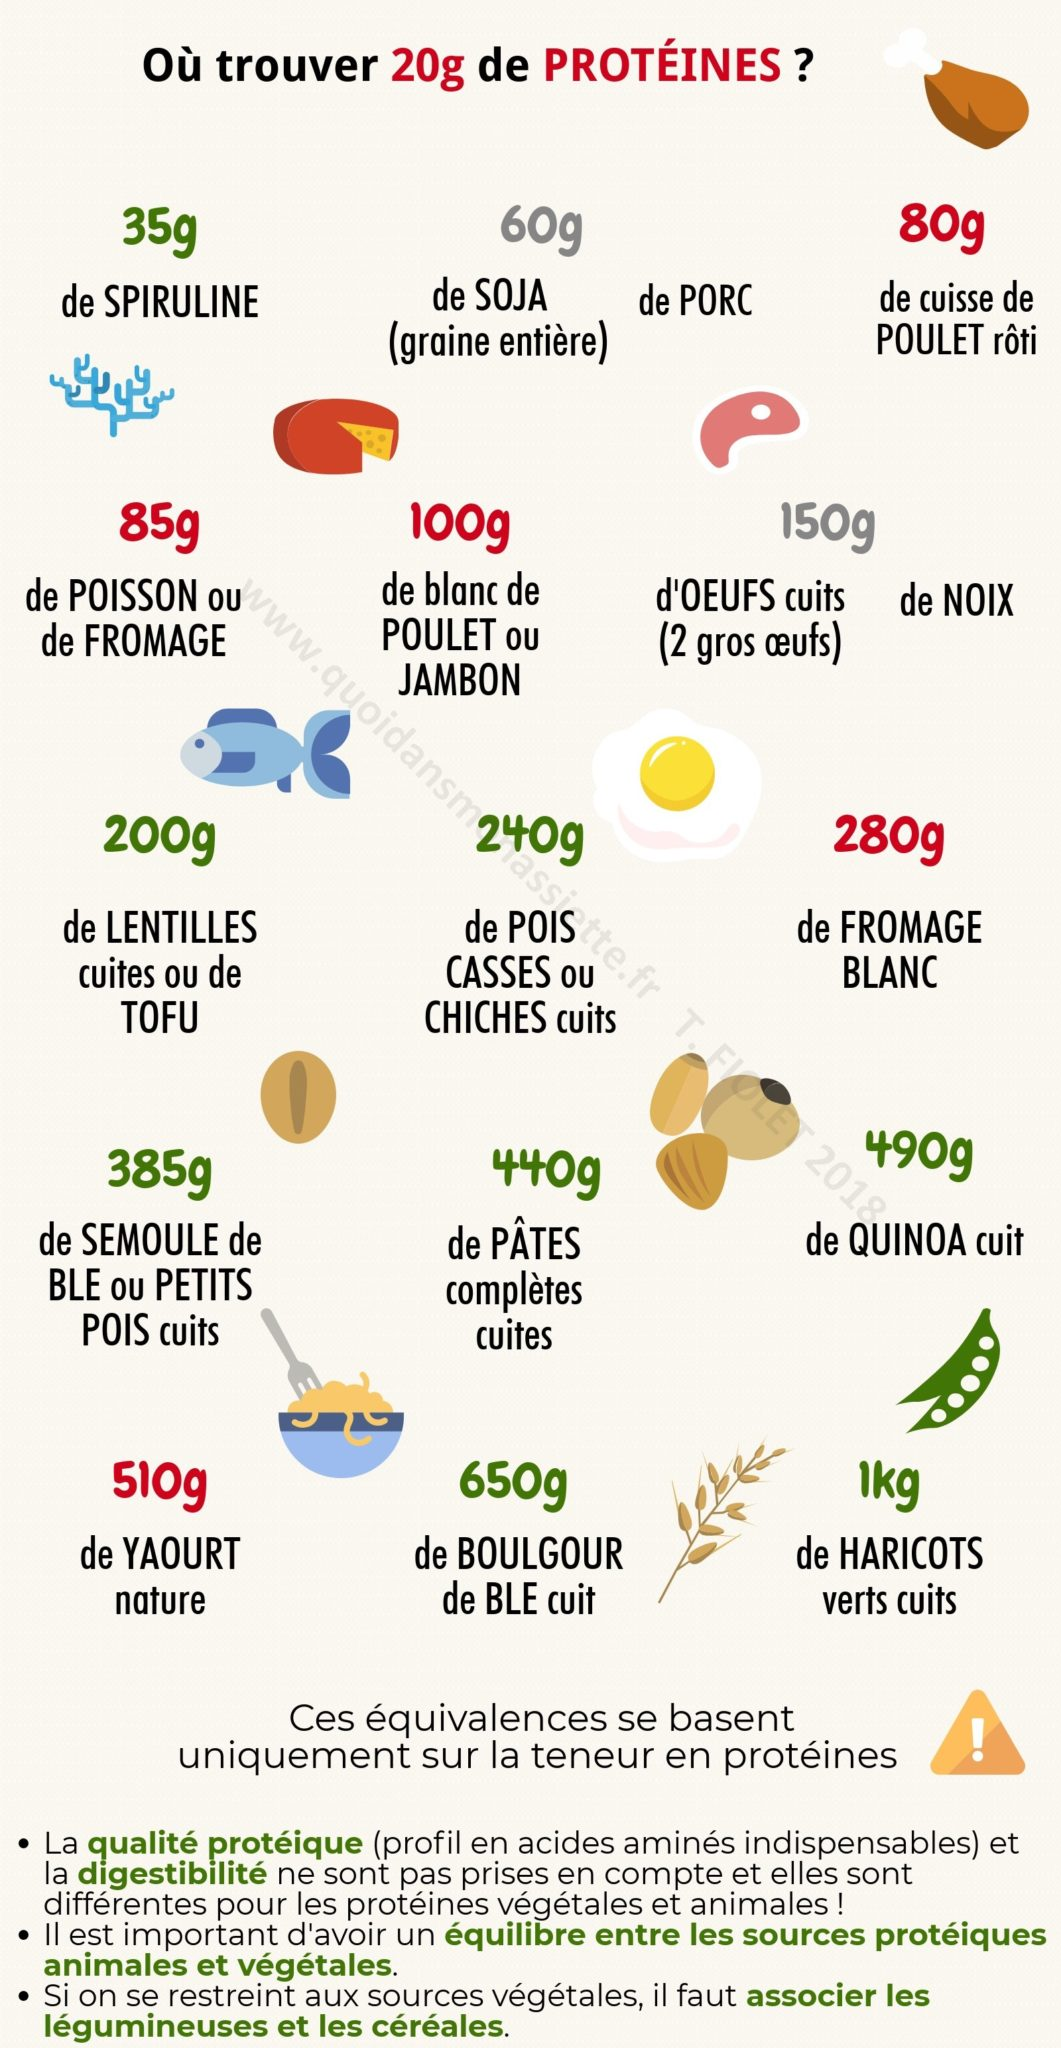 portion protéines equivalence 20g